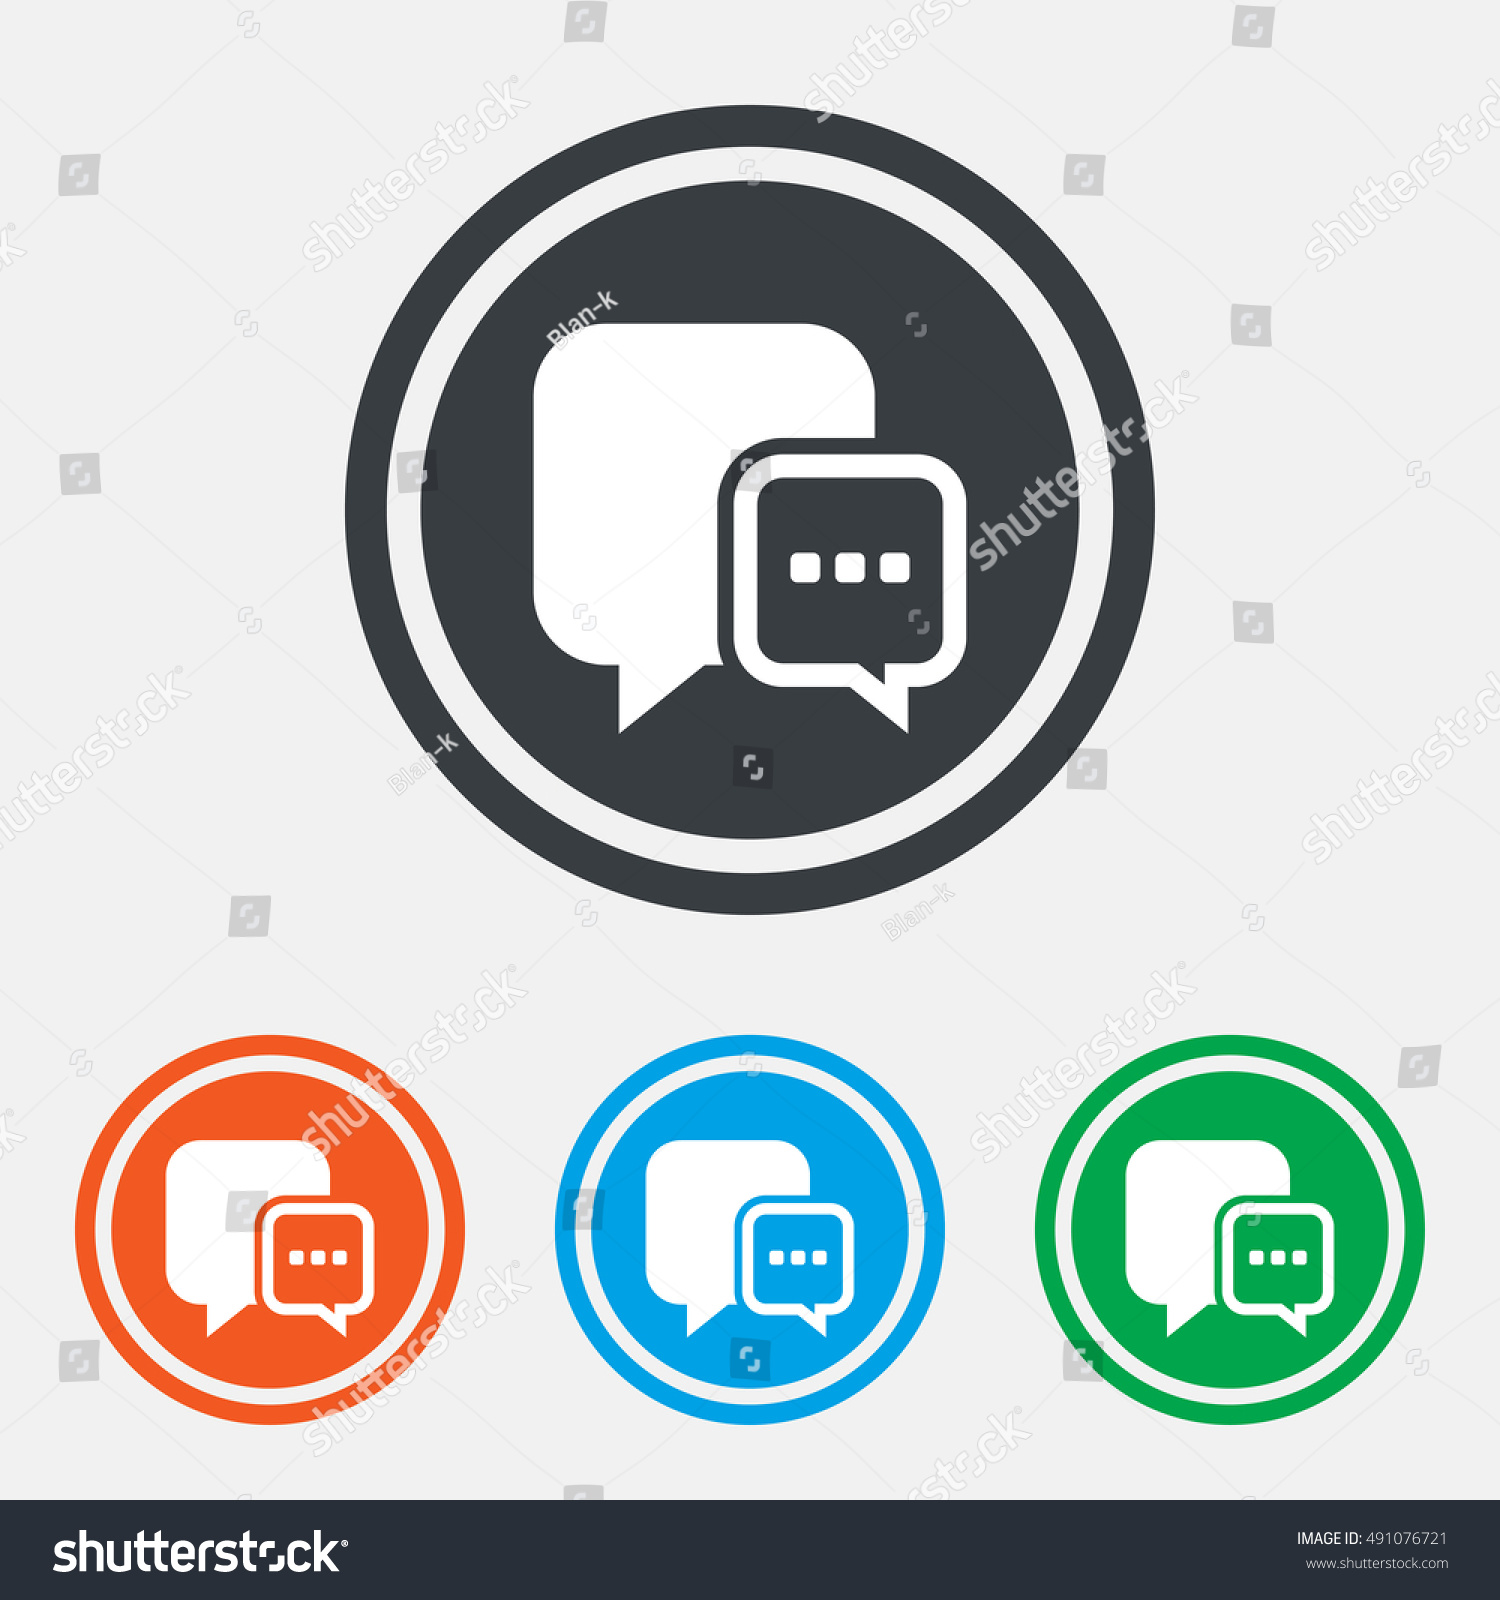 Chat sign icon speech bubble three stock vector 491076721 speech bubble with three dots symbol communication chat bubble graphic biocorpaavc